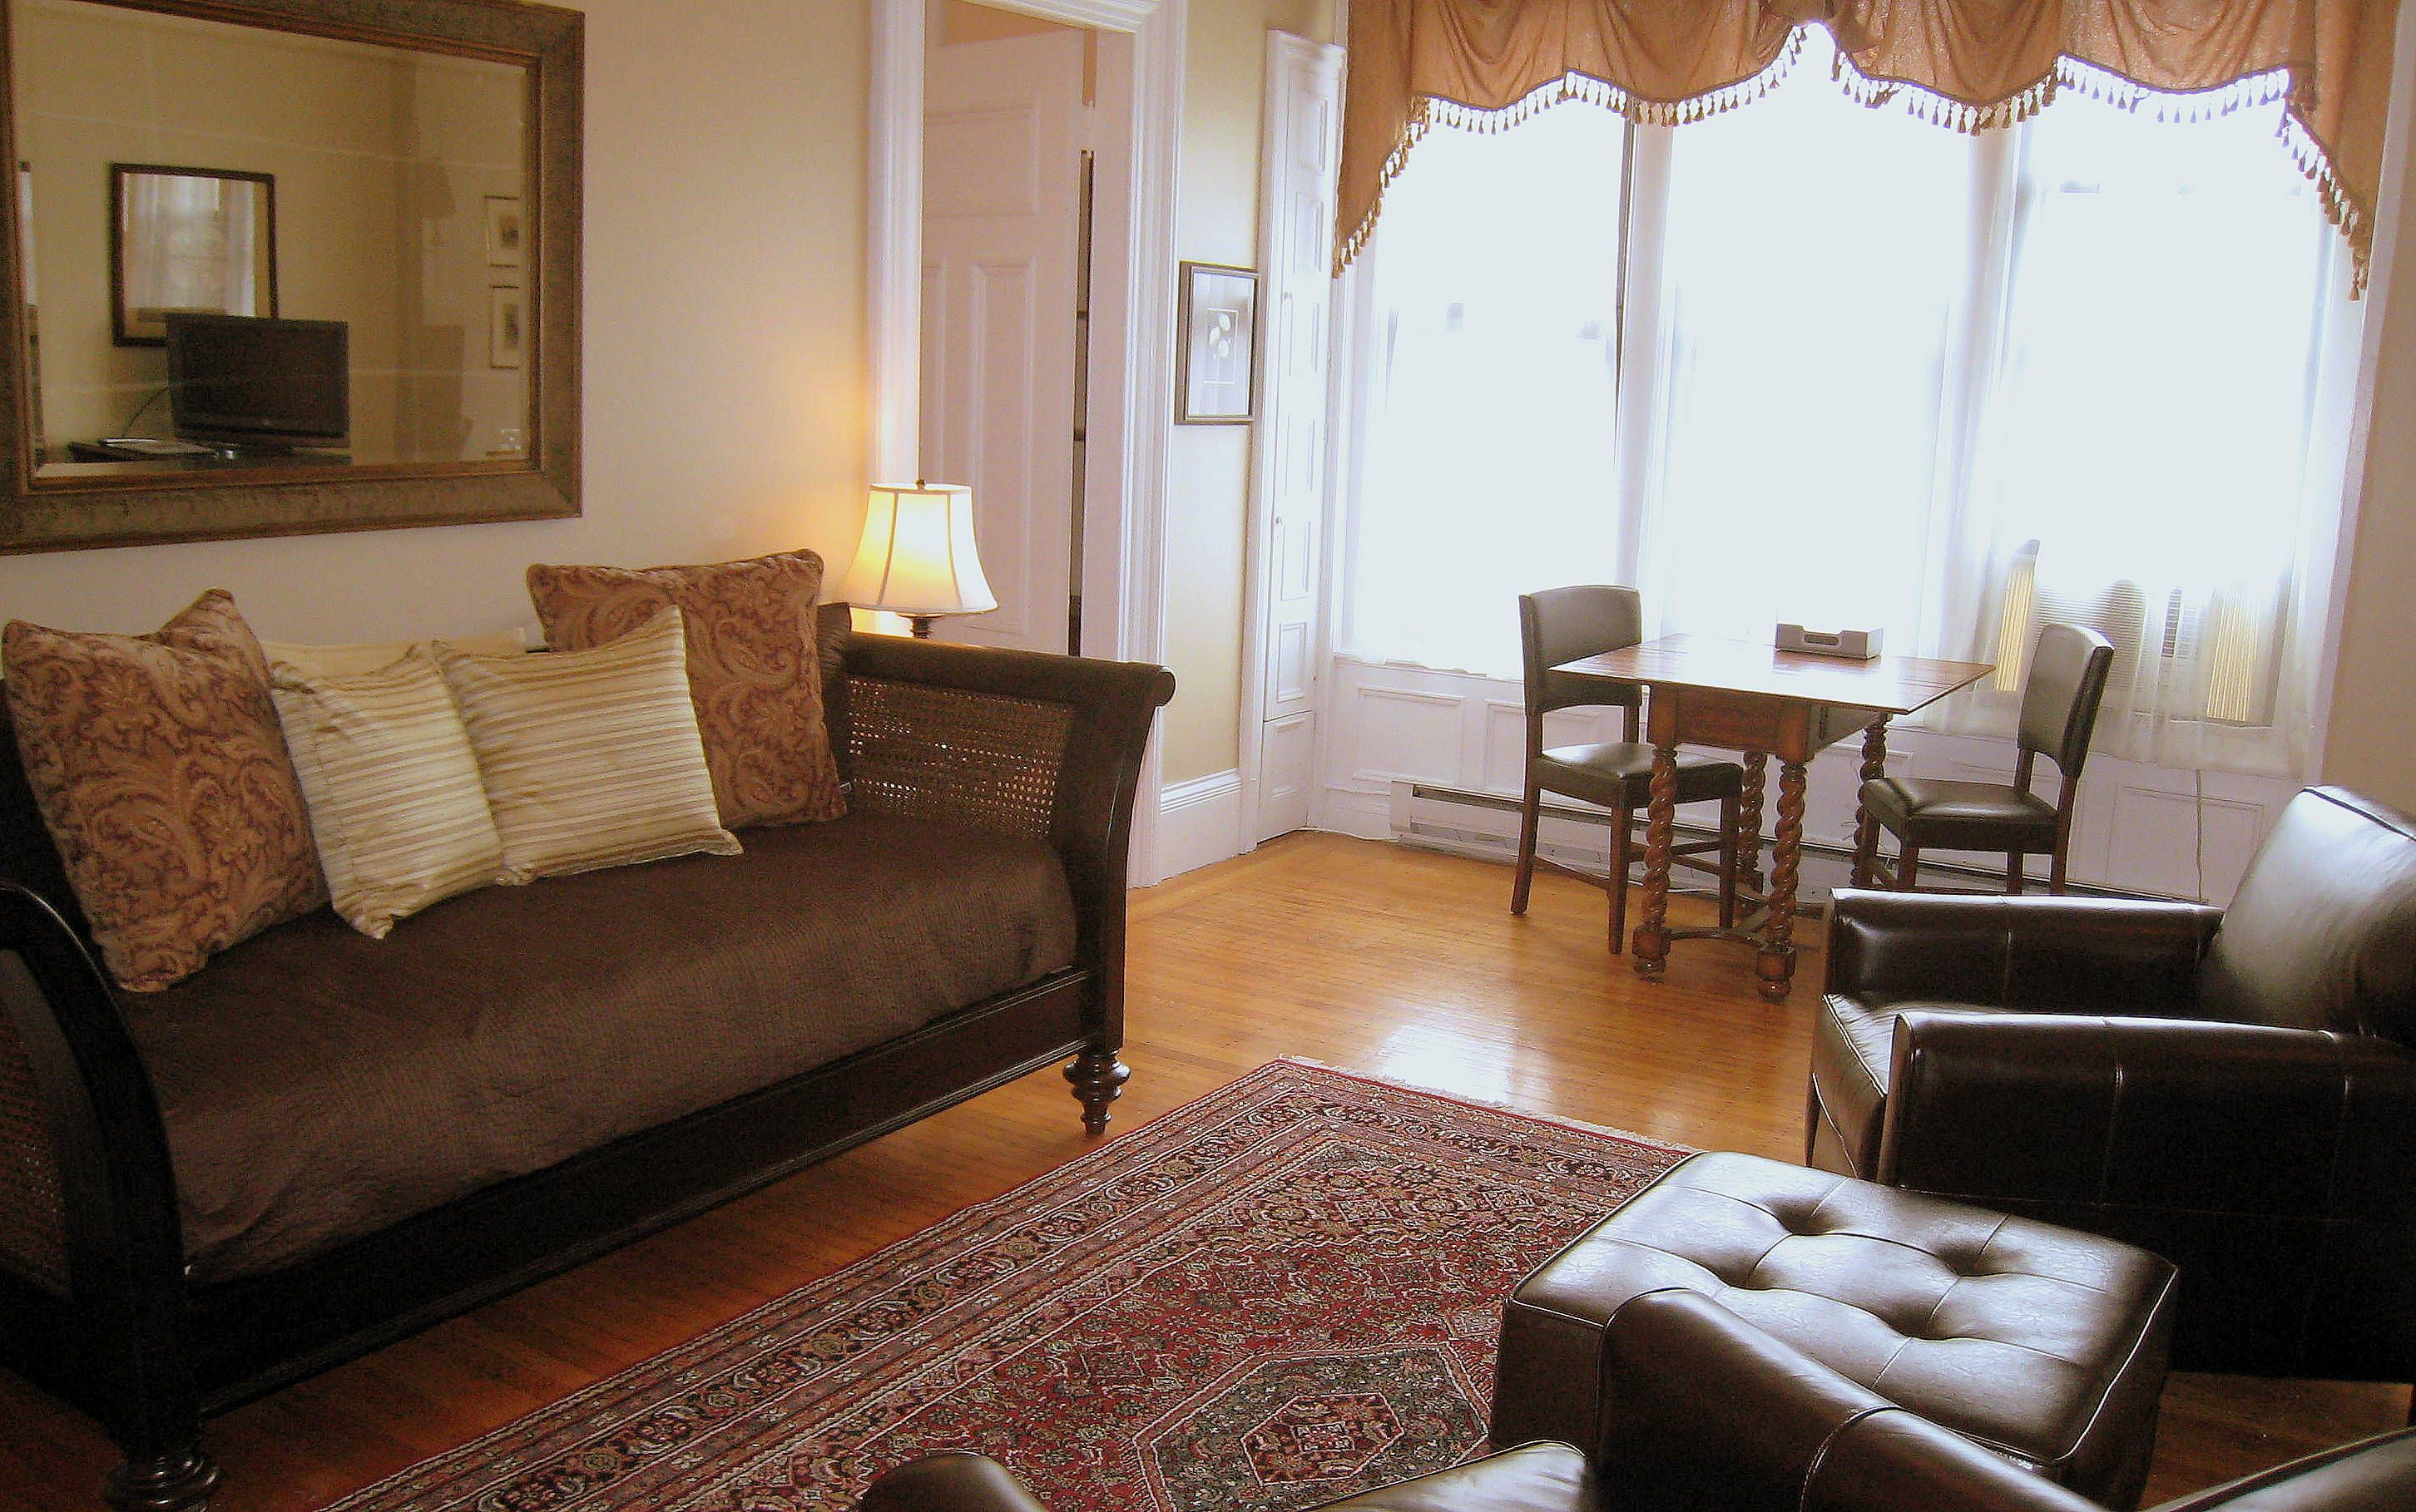 Boston Vacation Rentals Large Fully Furnished 1 Bedroom Apartment In The Backbay Furnished Apartment Furnishings Fully Furnished Apartments